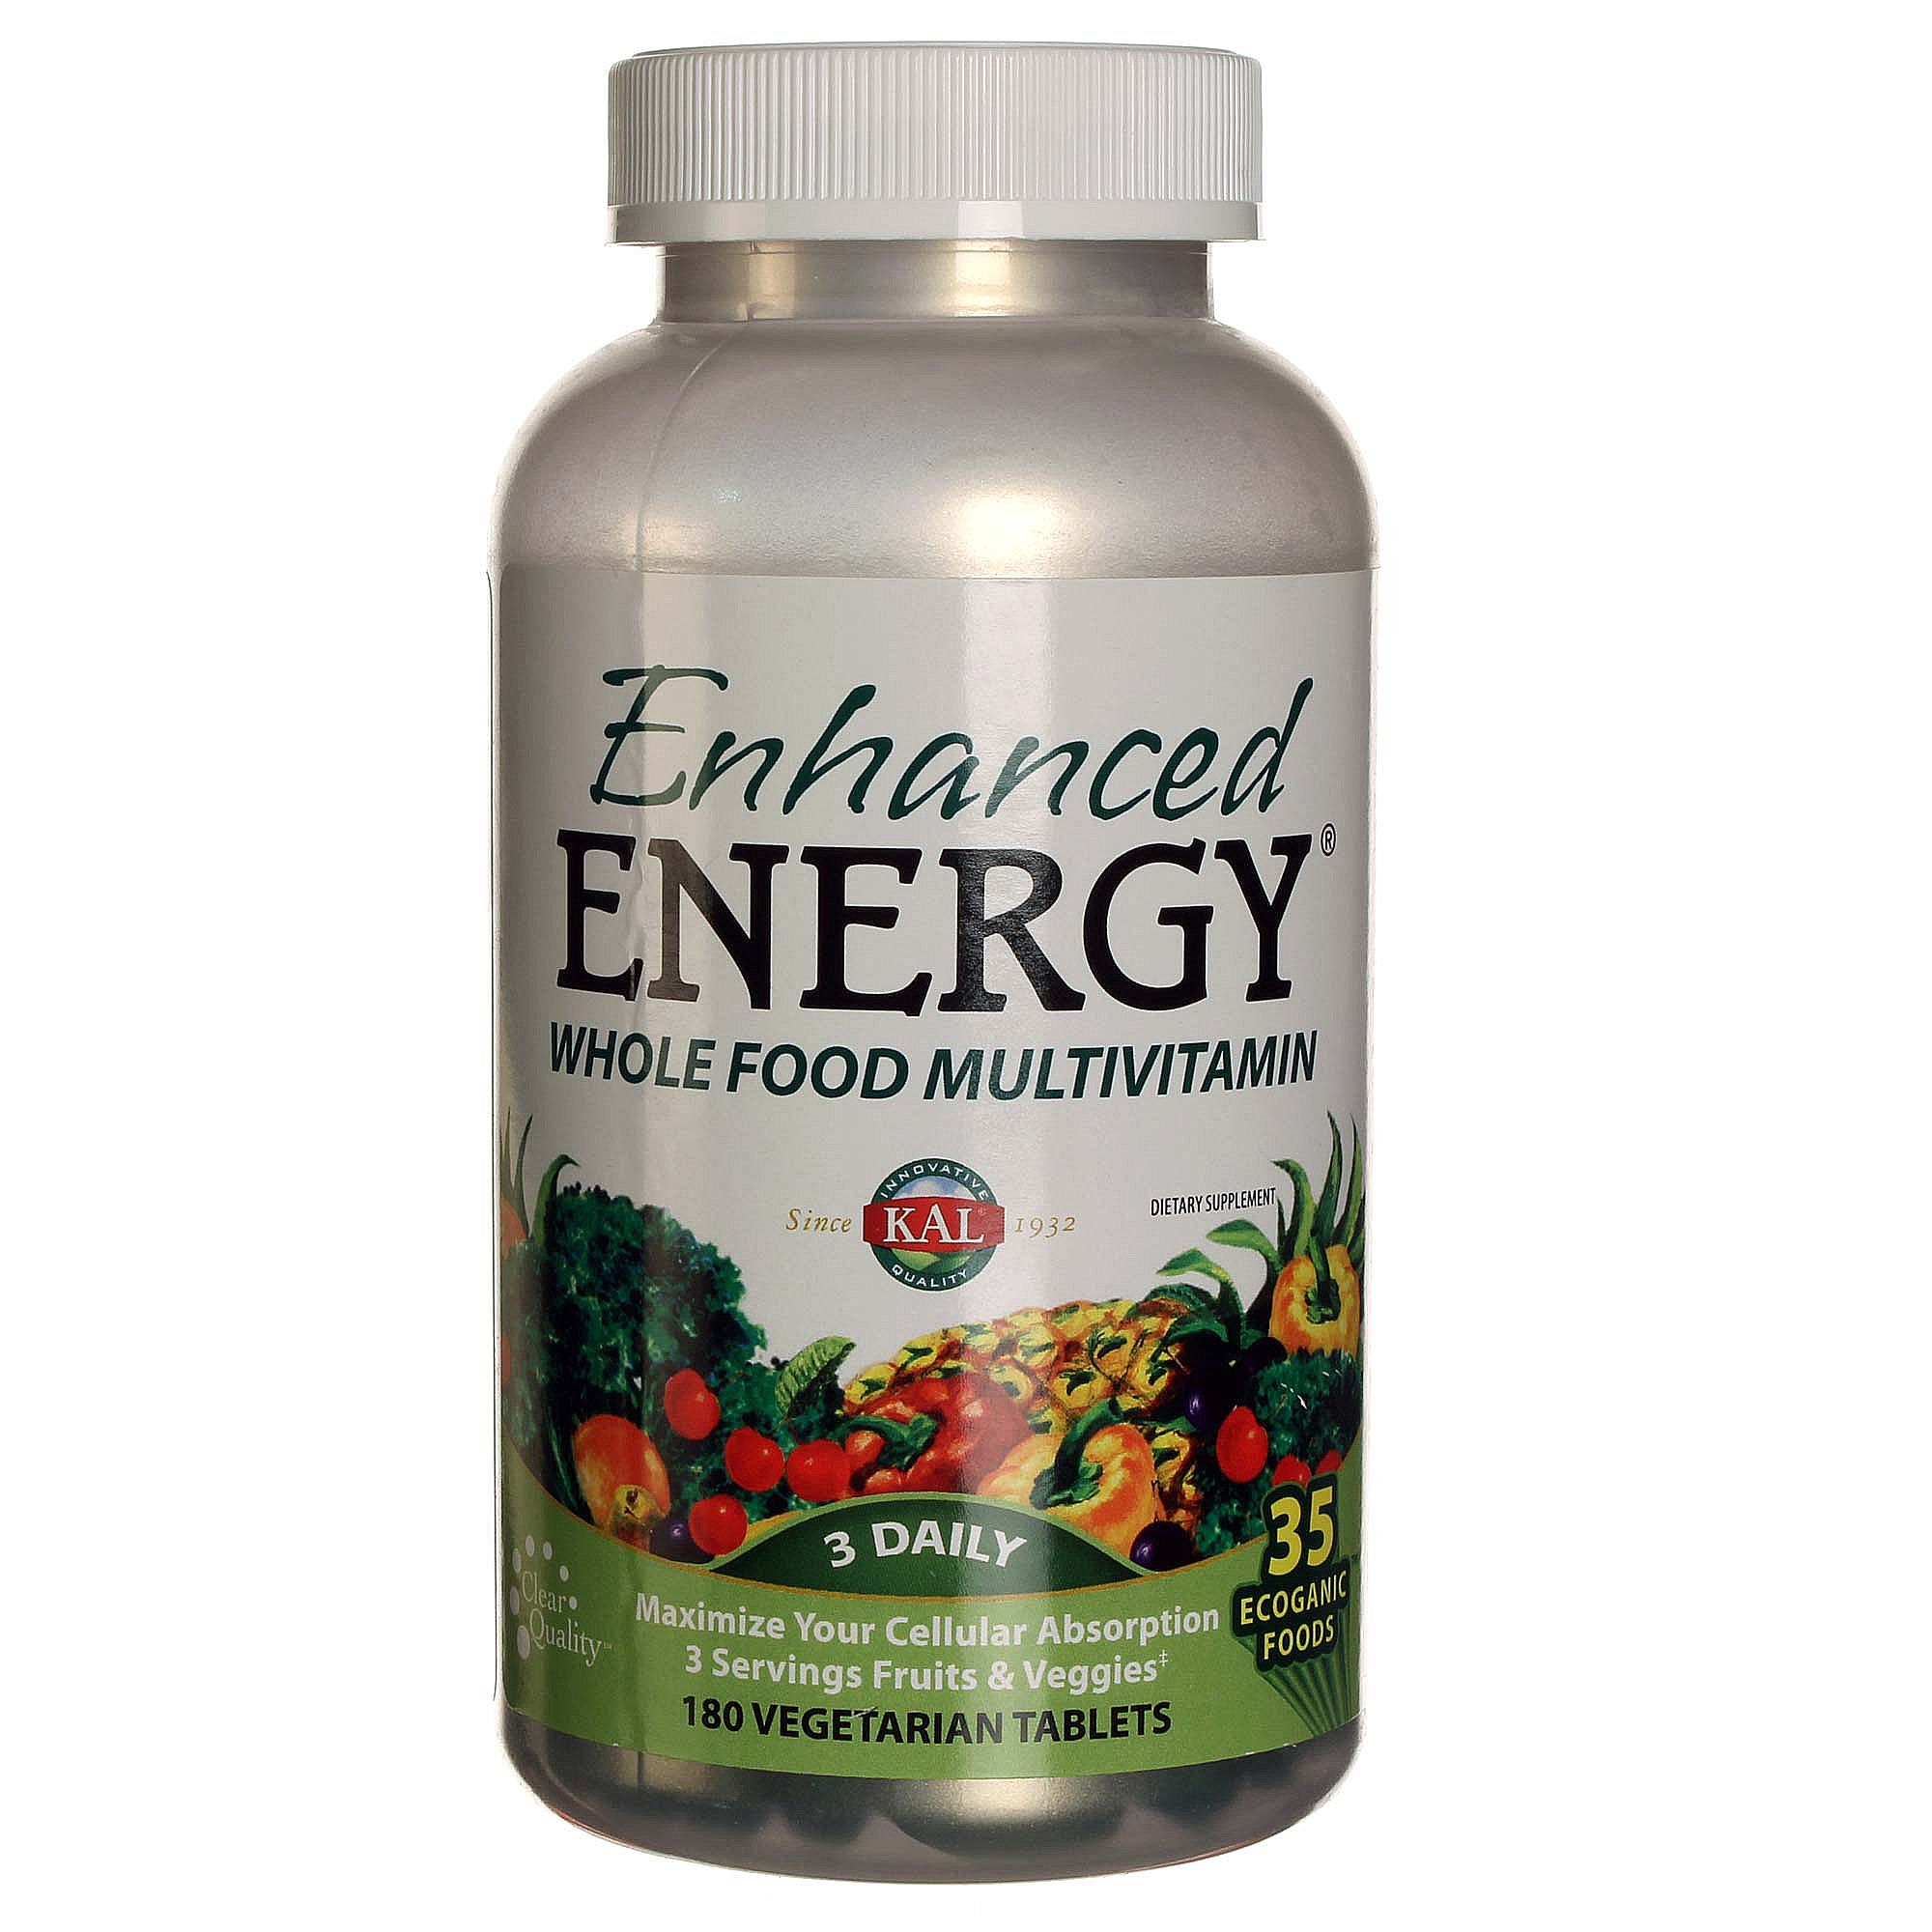 Enhanced Energy Whole Food Multivitamin Review